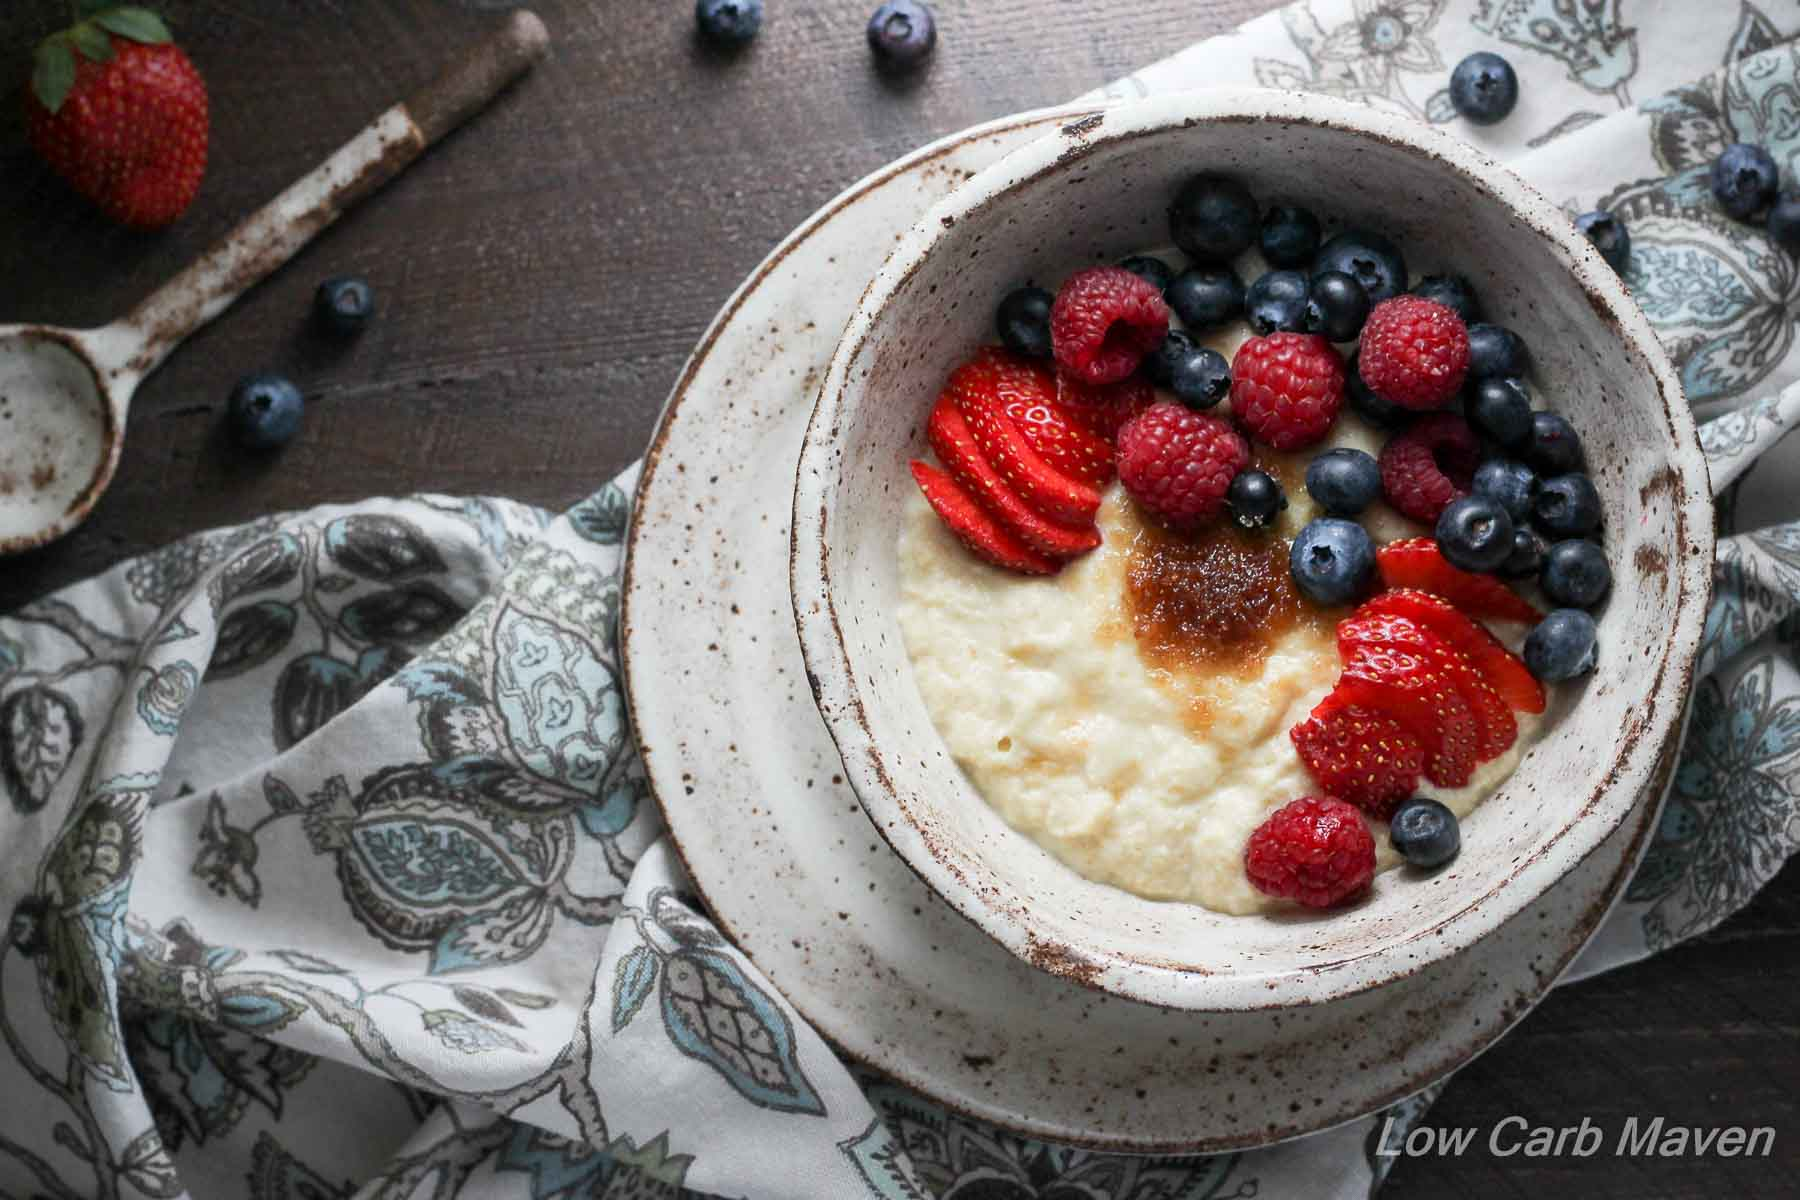 Low Carb Paleo Porridge with Berries (Almond Flour) | Low carb, Gluten-free, Dairy-free, Paleo, Keto, THM | LowCarbMaven.com